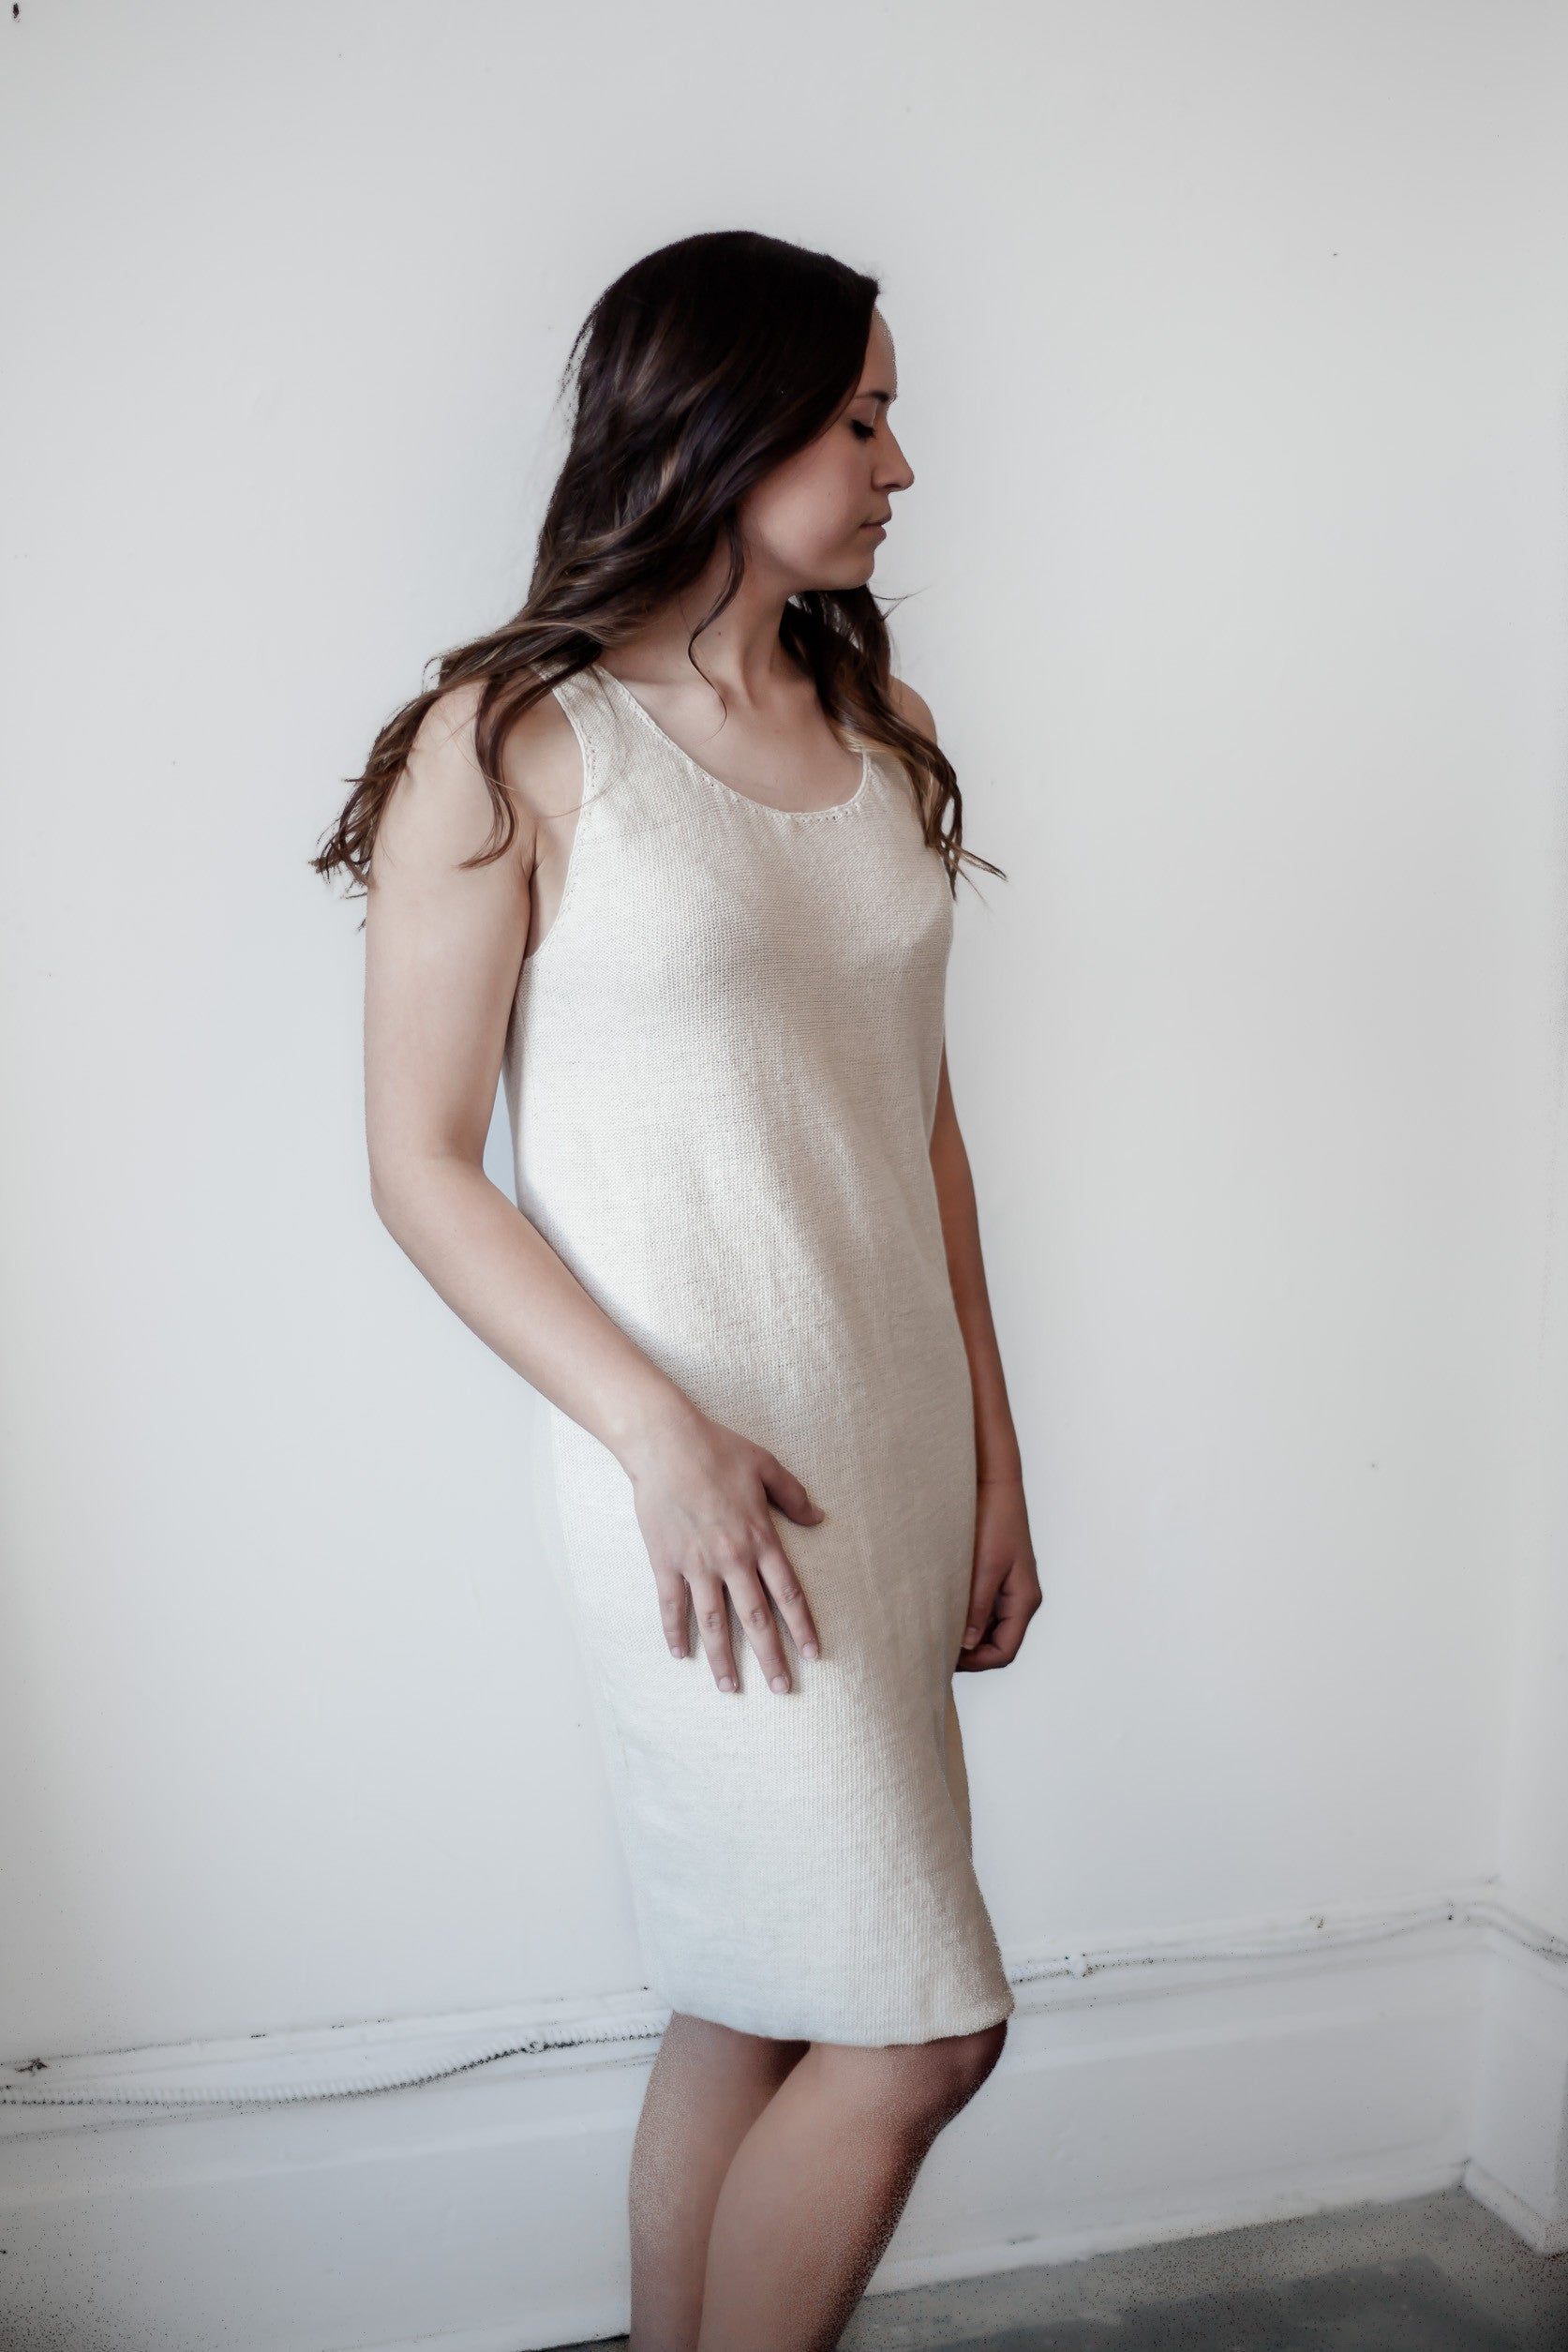 ECRU TANK DRESS - Fallow Ltd.